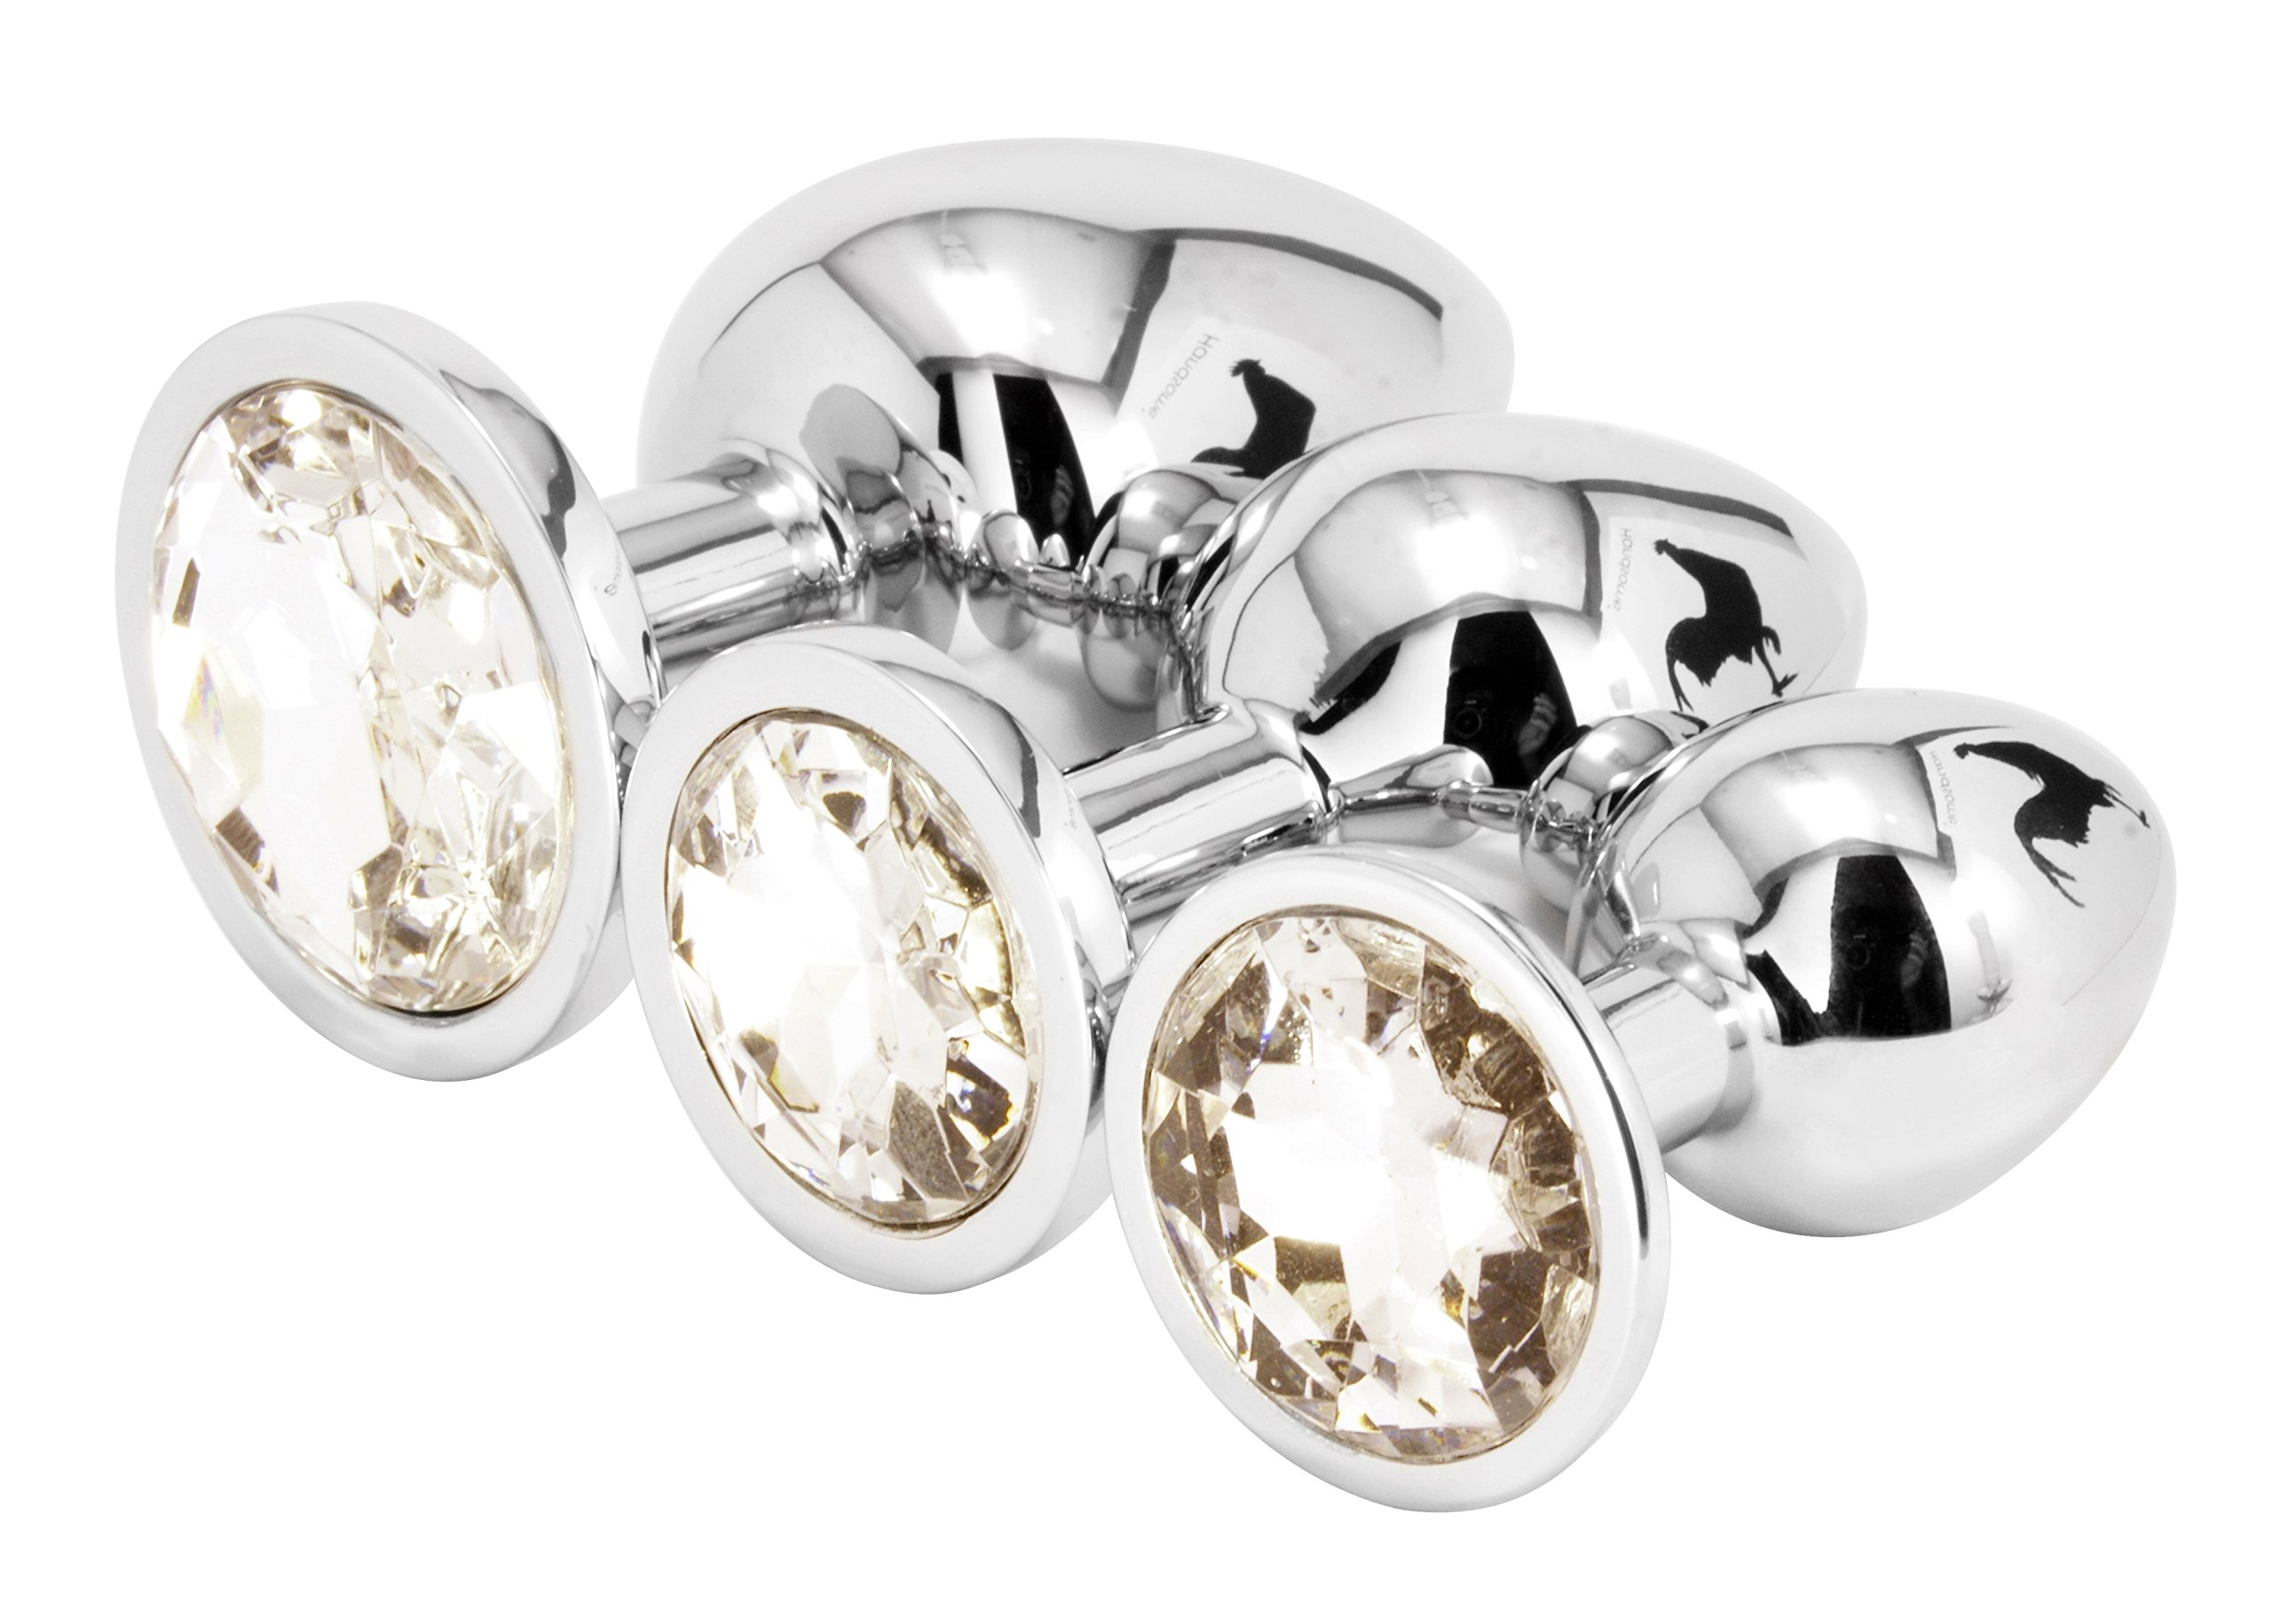 Handsome Cock Jewelled Butt Plug Set, Clear